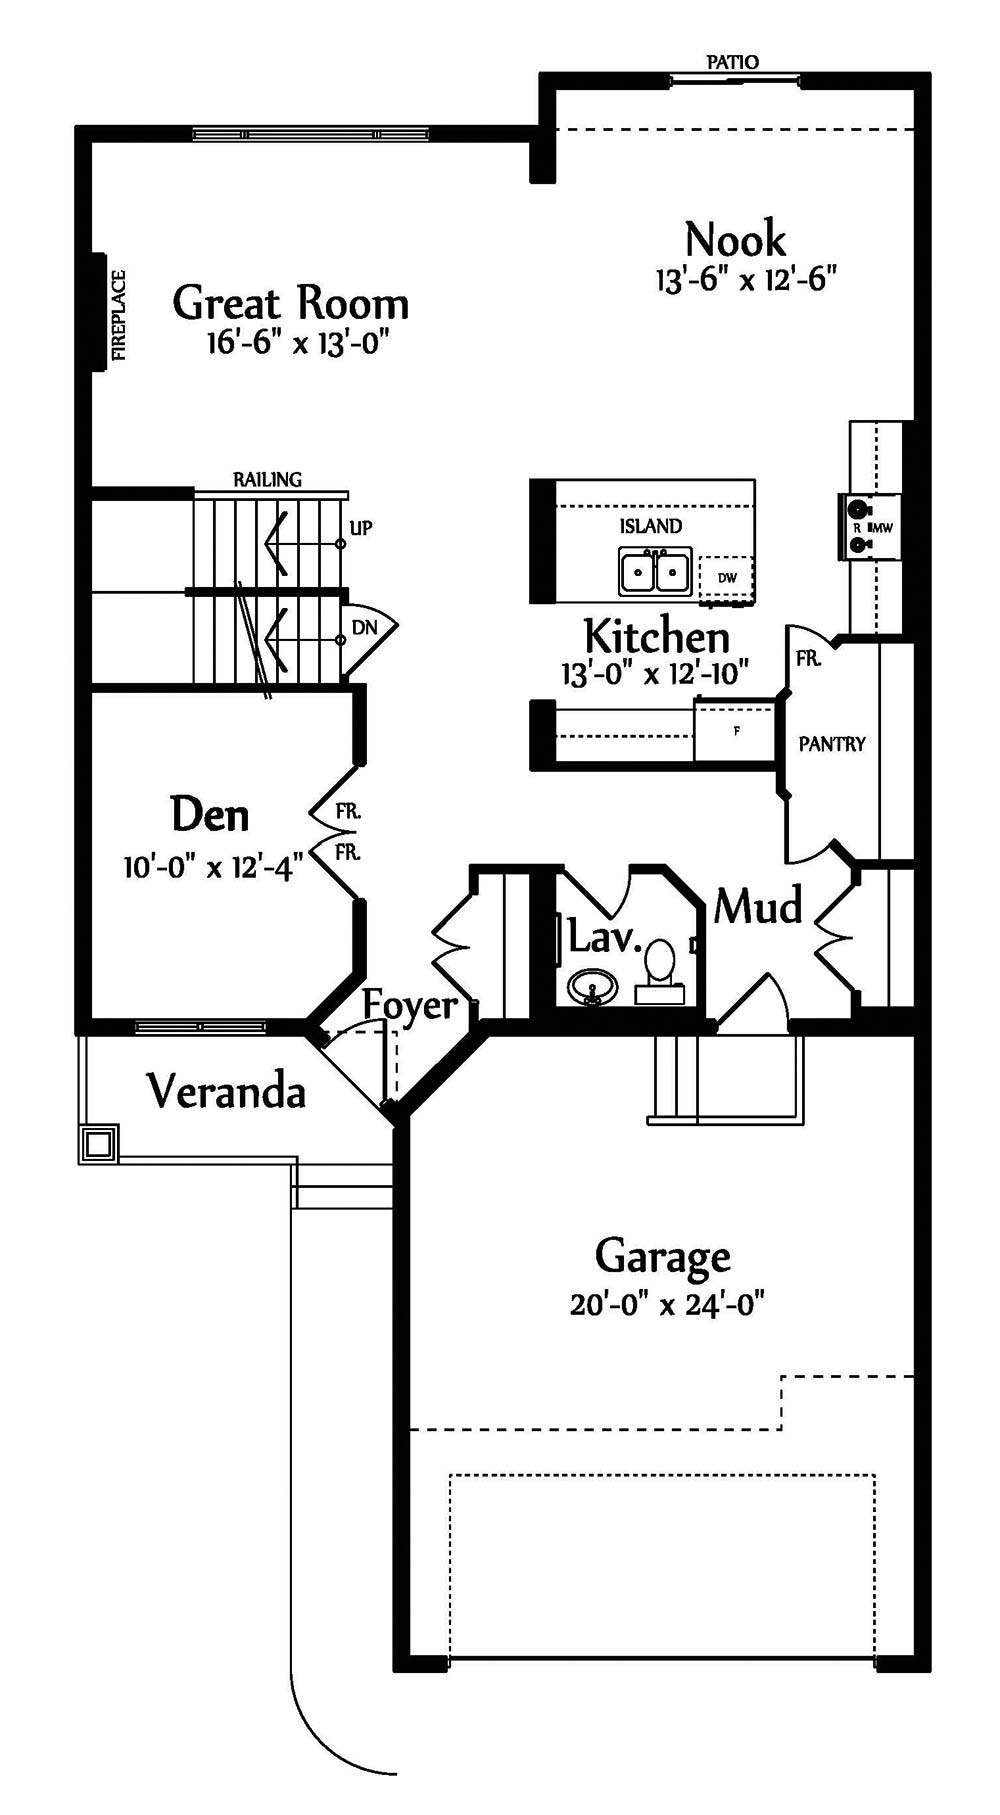 Alexandra Main floorplan 1139